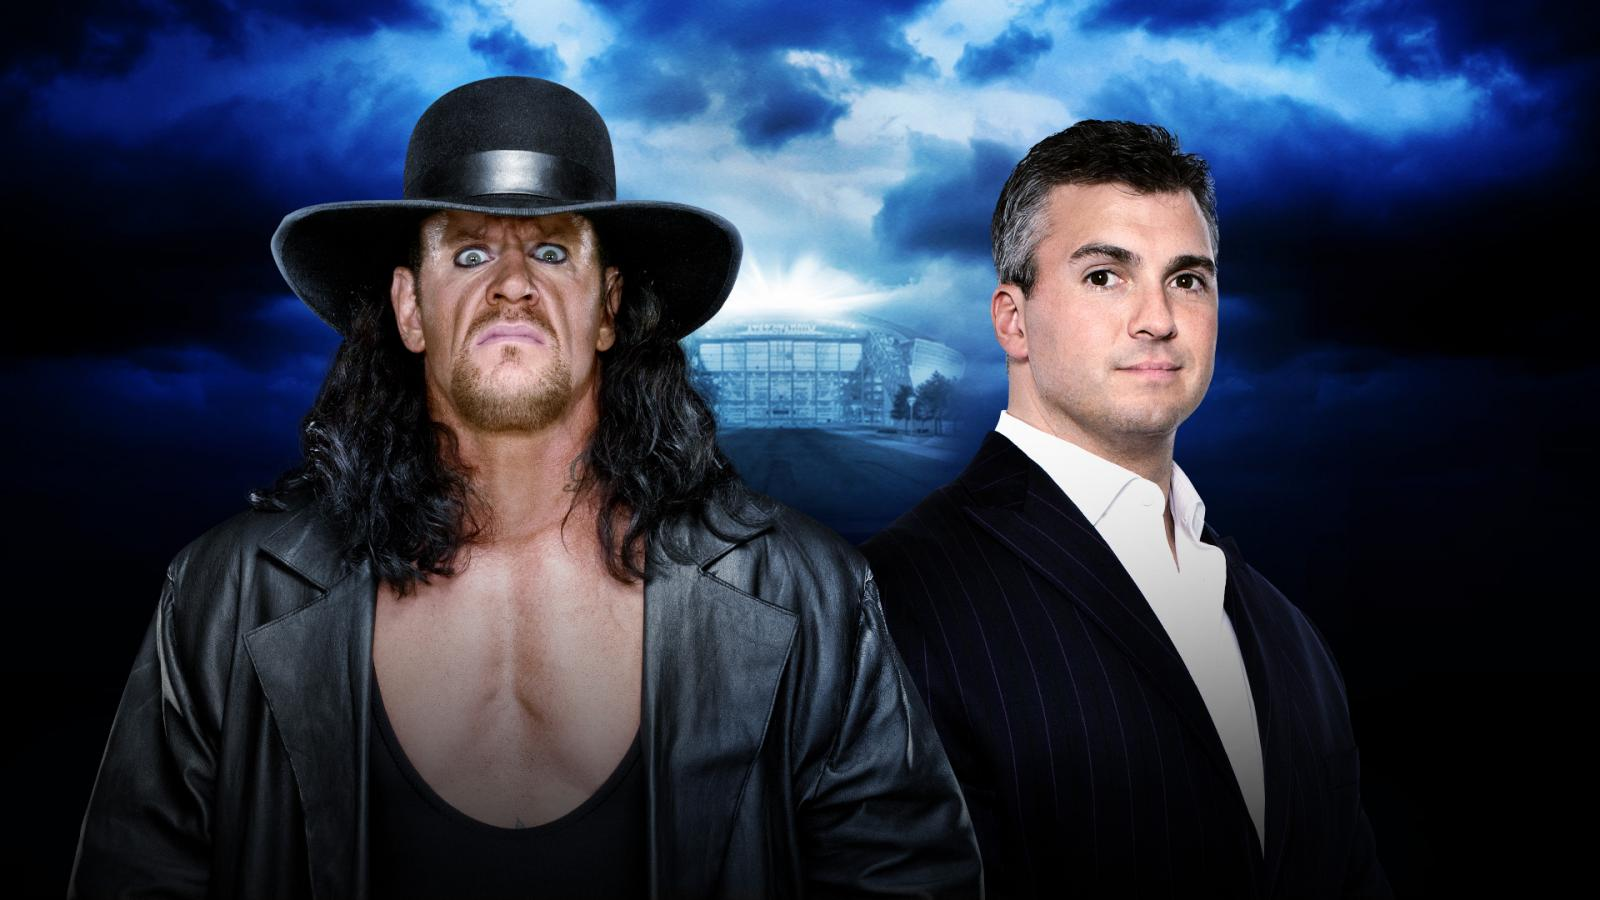 http://dailyddt.com/files/2016/02/The-Undertaker-Shane-McMahon.jpg